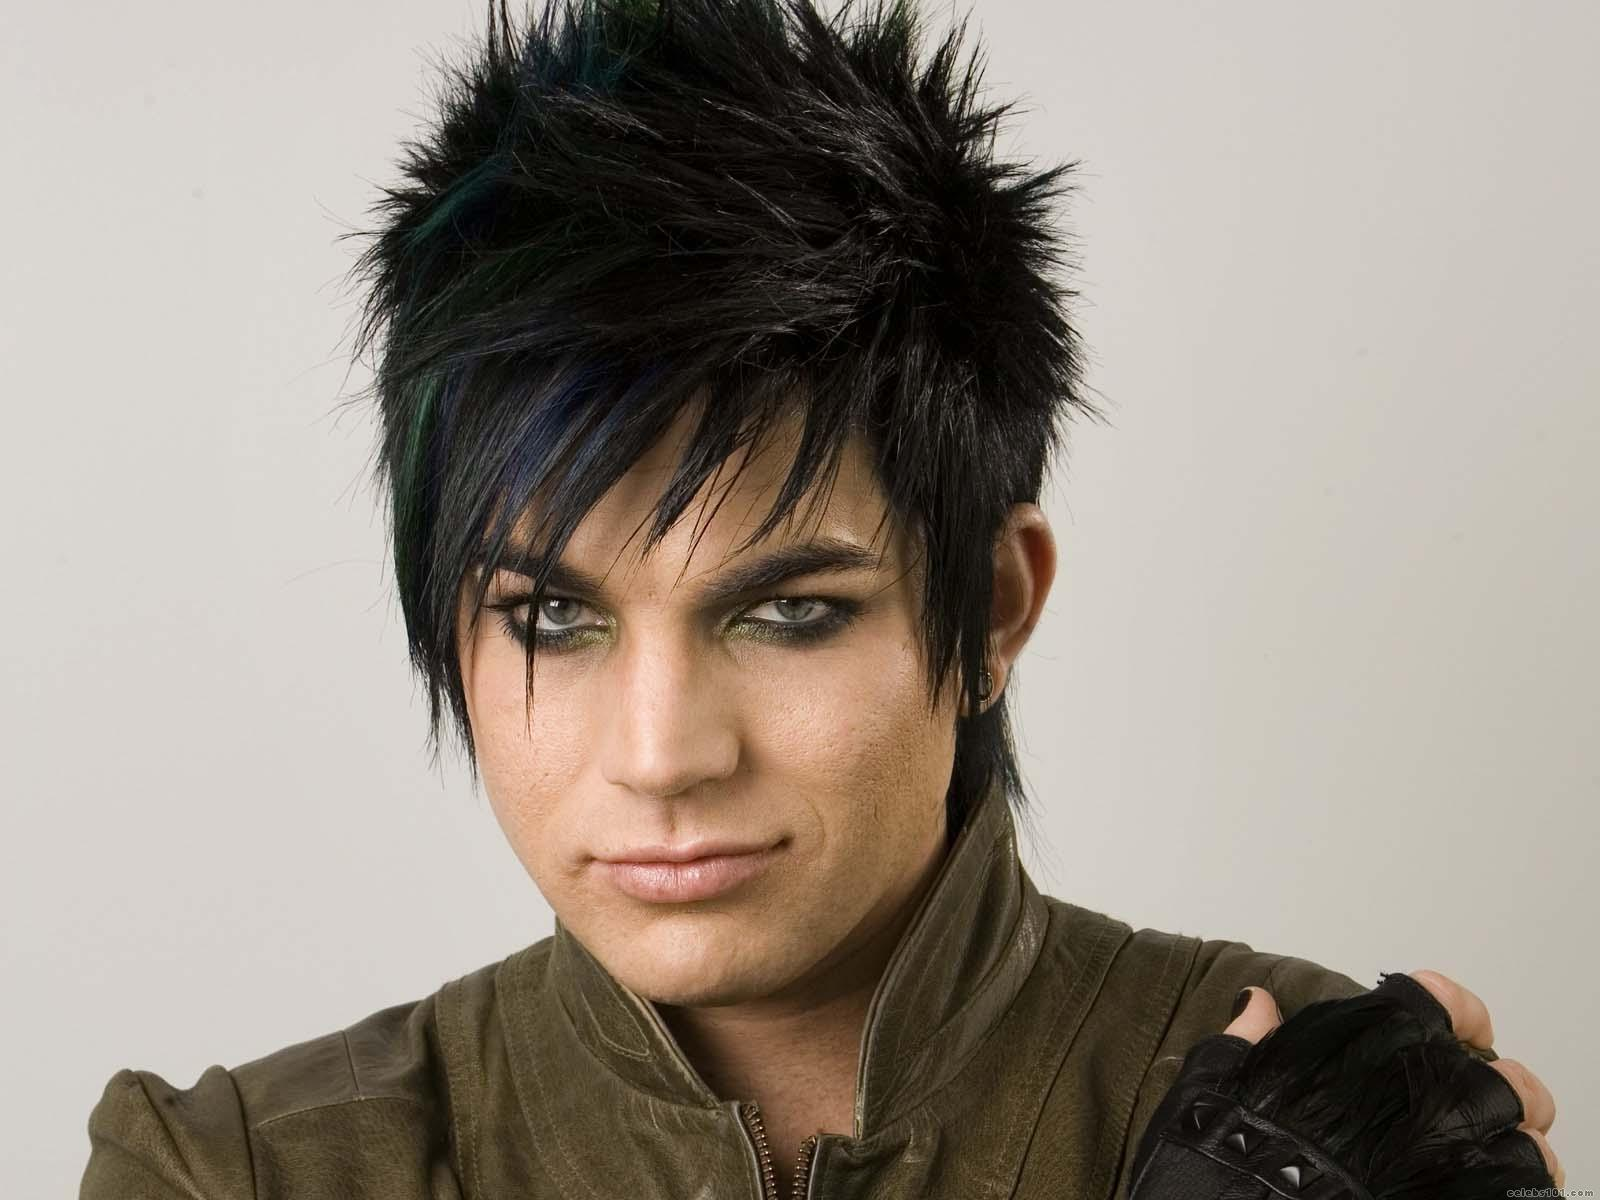 short emo boy haircuts hd wall paper | 1080p hd wallpaper